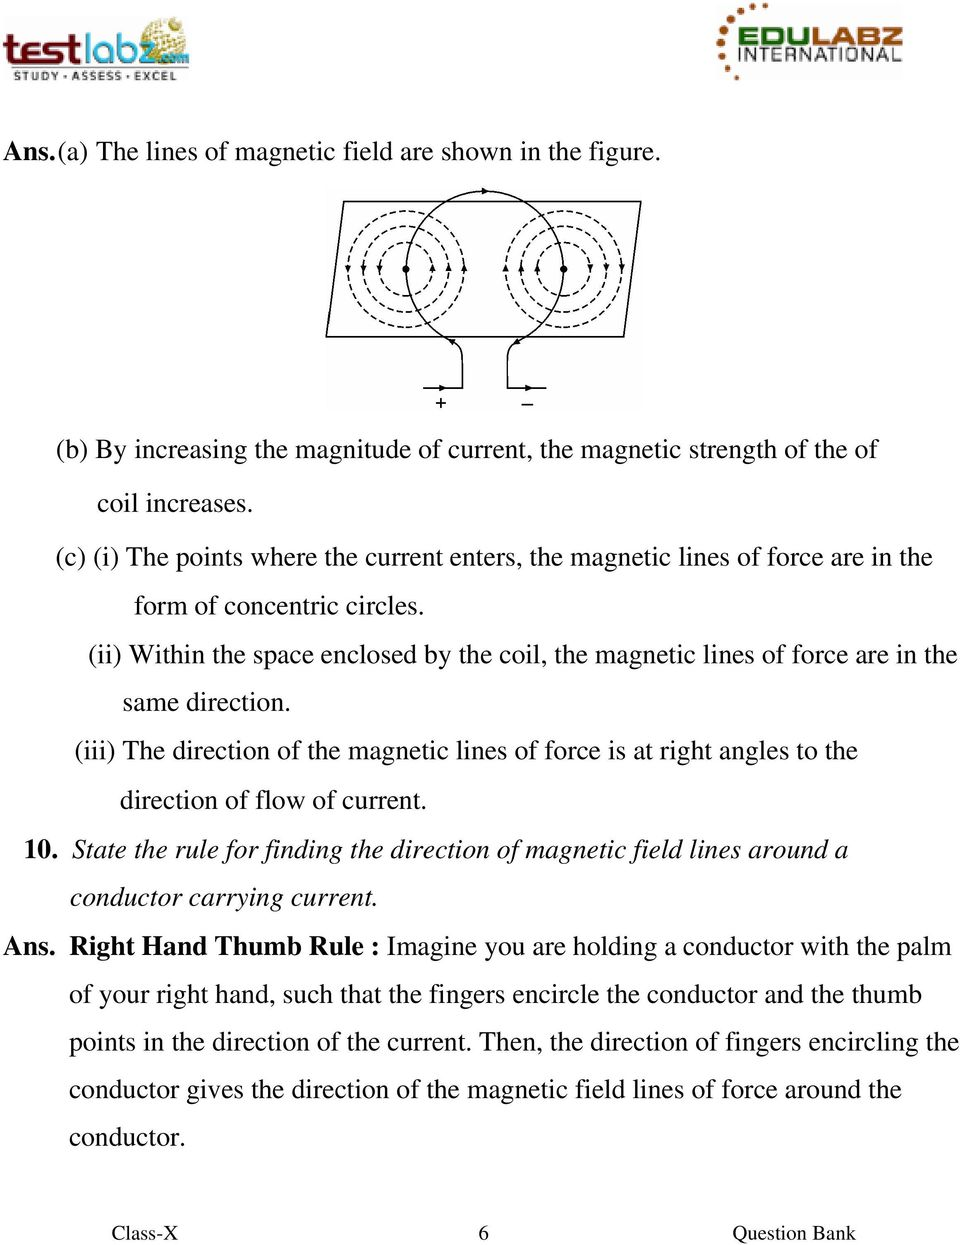 (ii) Within the space enclosed by the coil, the magnetic lines of force are in the same direction.